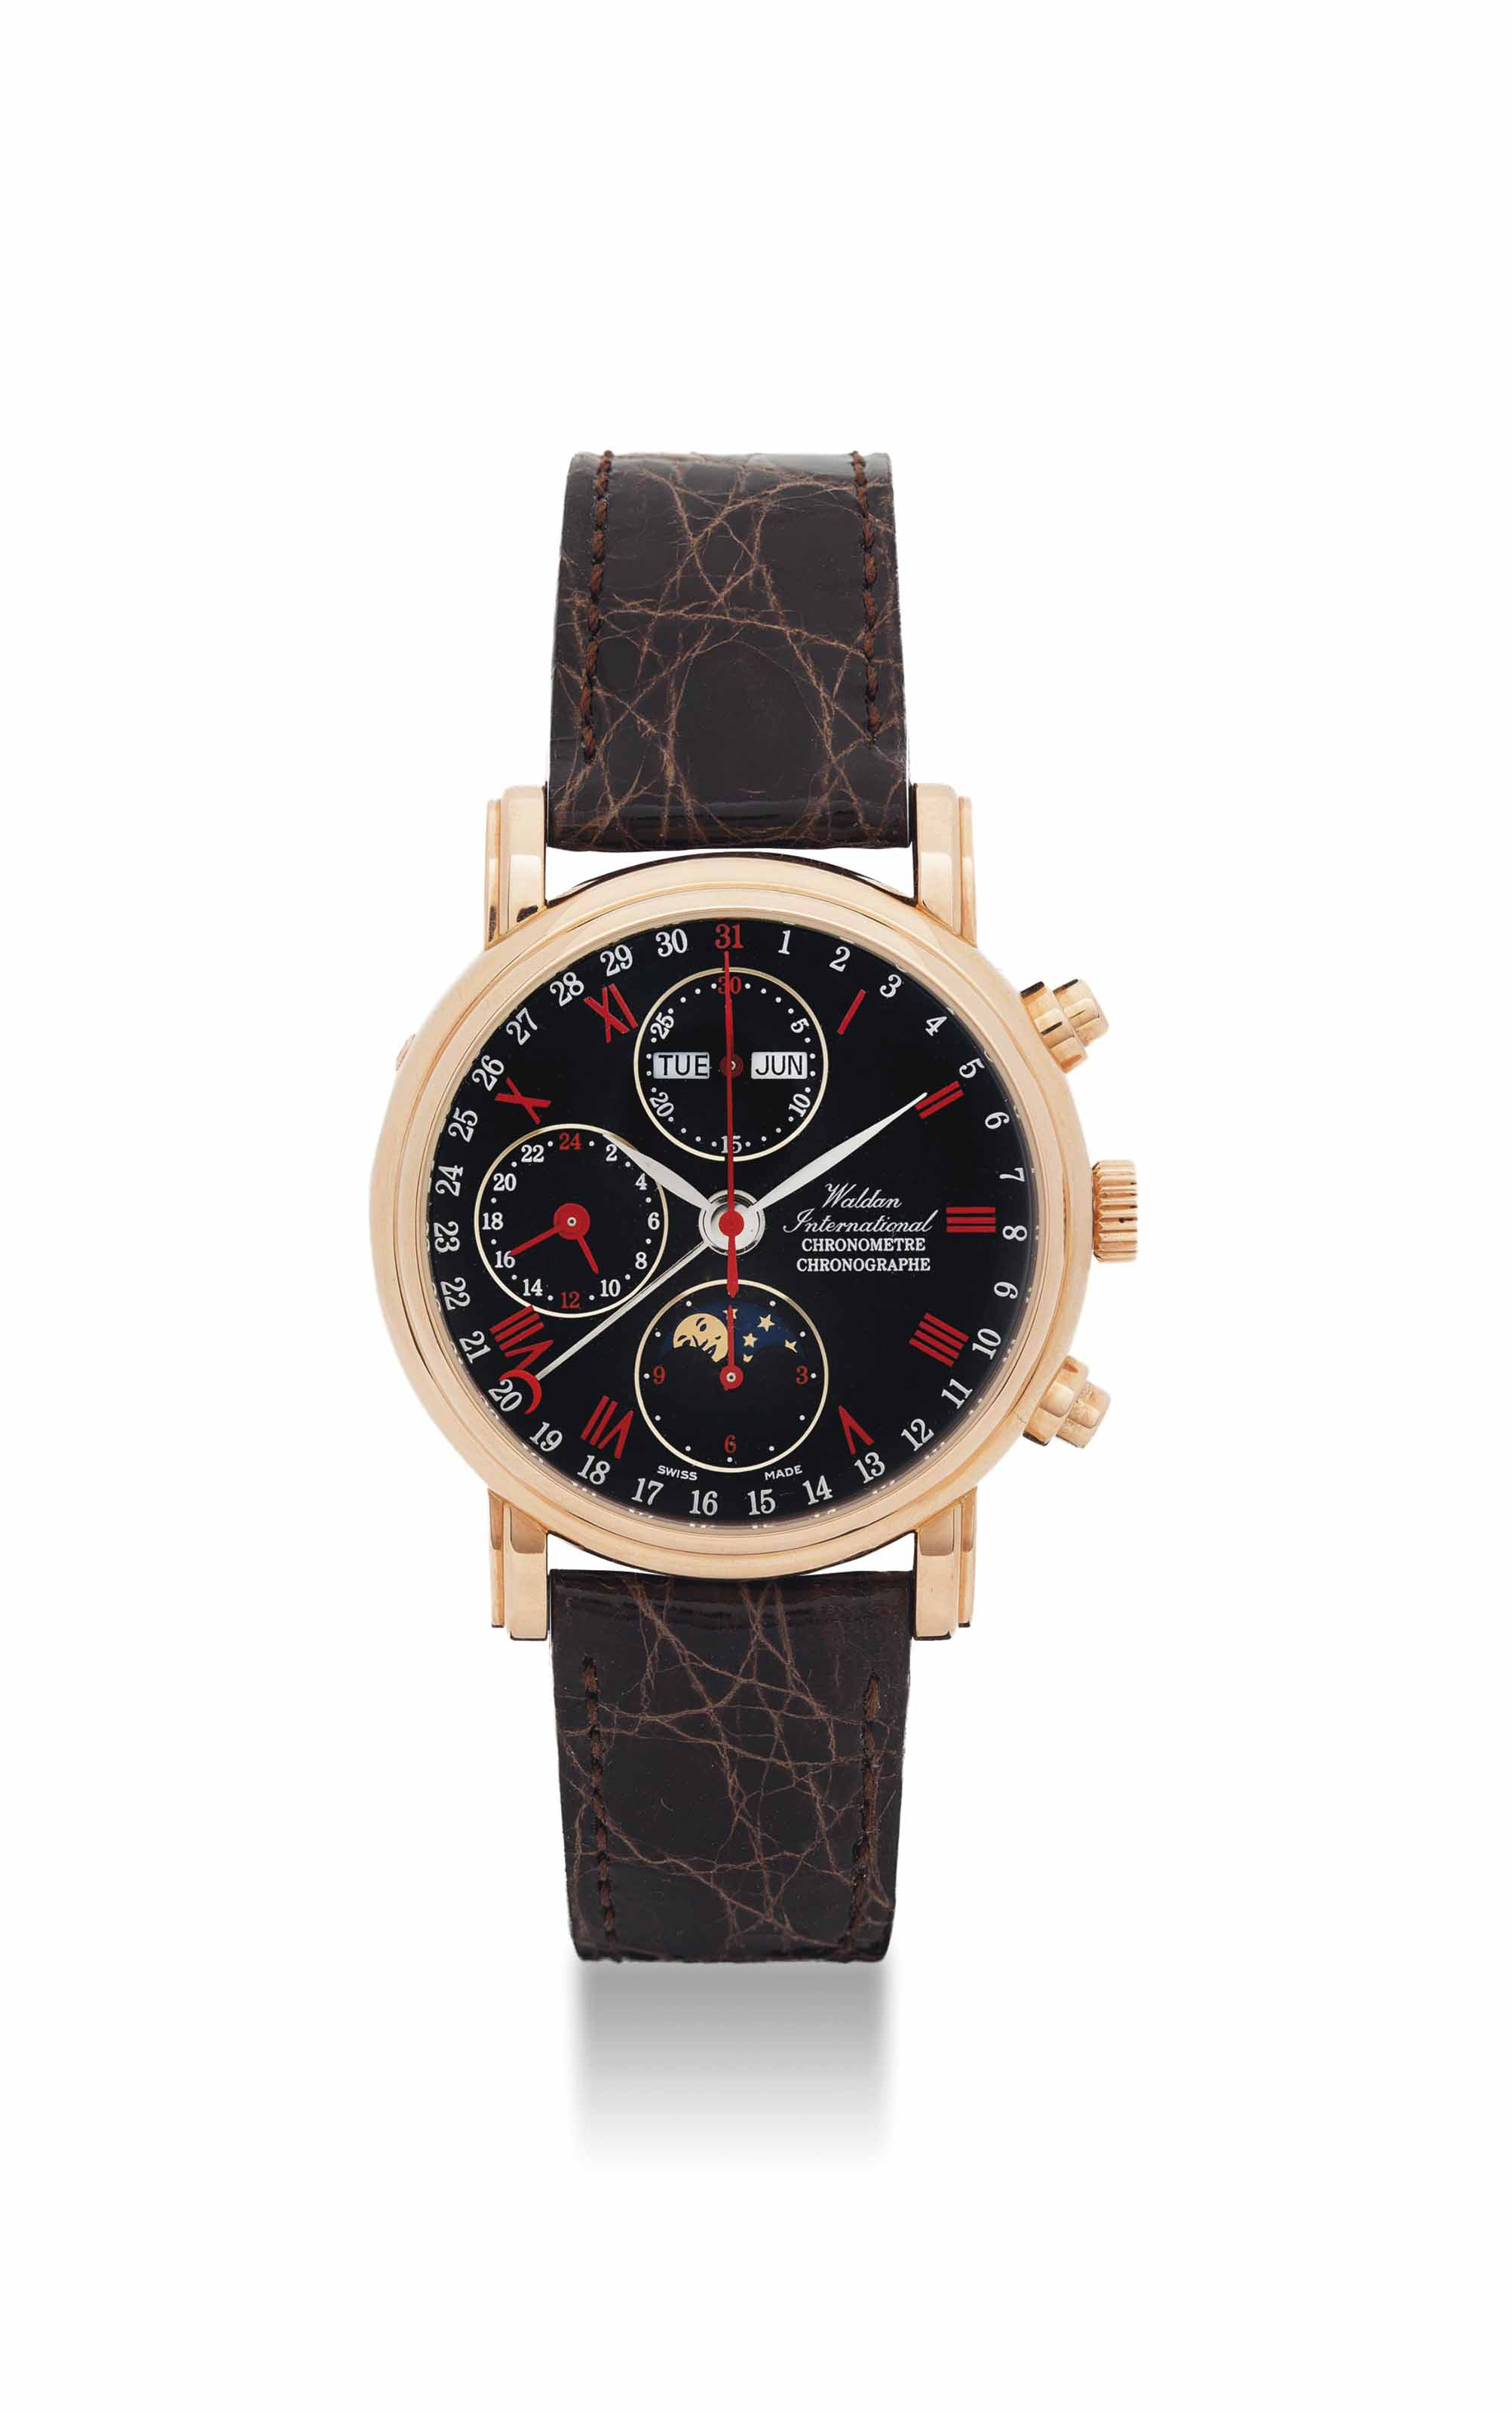 WALDAN INTERNATIONAL. AN 18K PINK GOLD AUTOMATIC TRIPLE CALENDAR CHRONOGRAPH WRISTWATCH WITH MOON PHASES